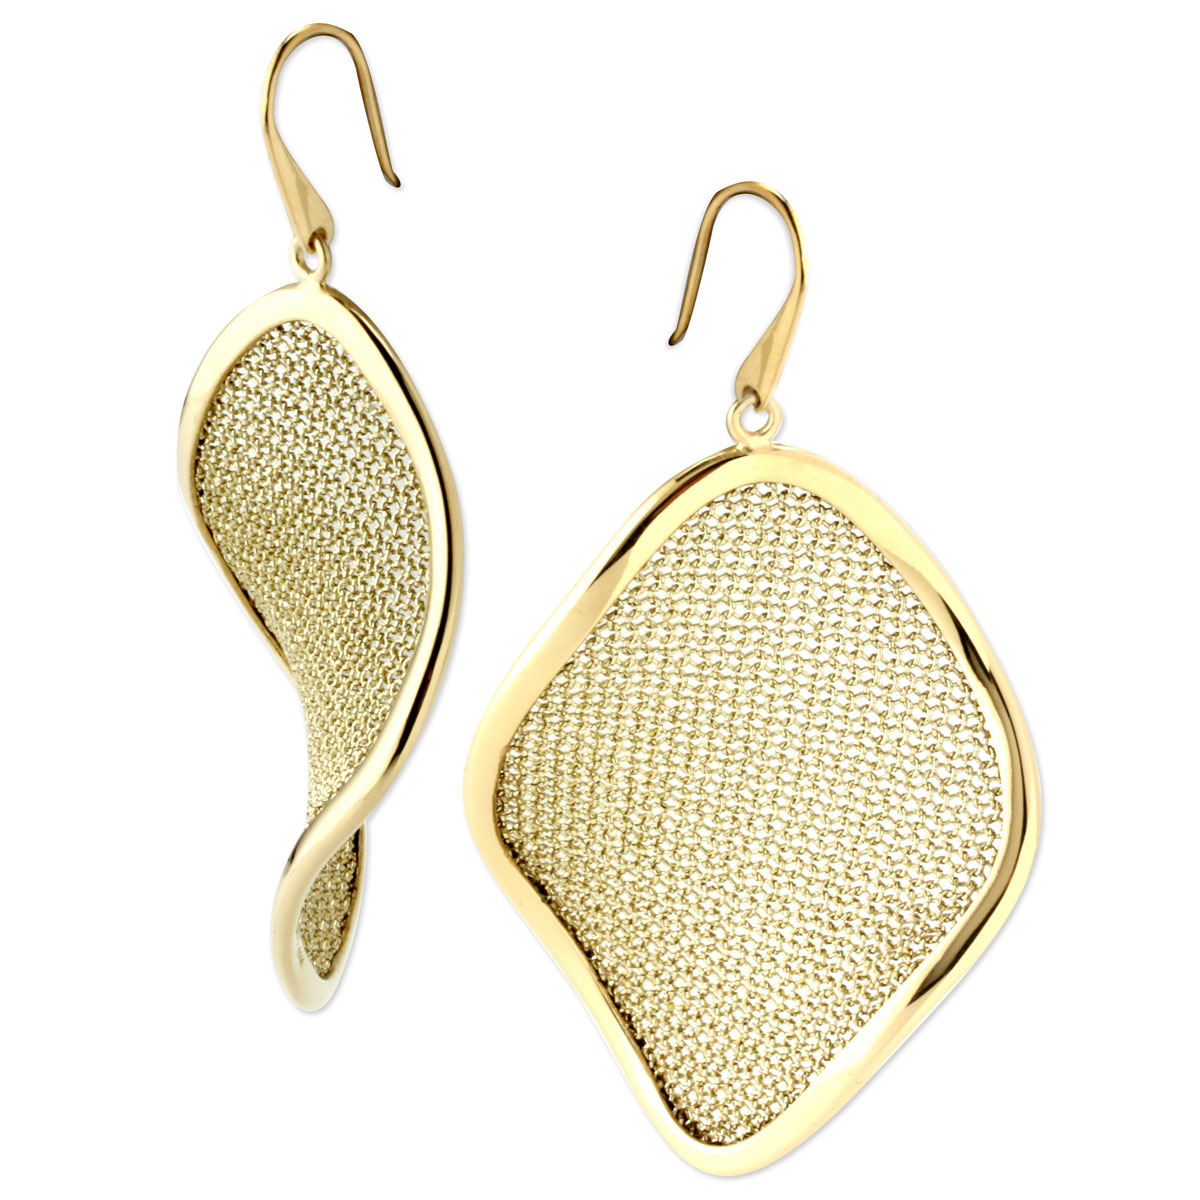 343920-Adami & Martucci Earrings